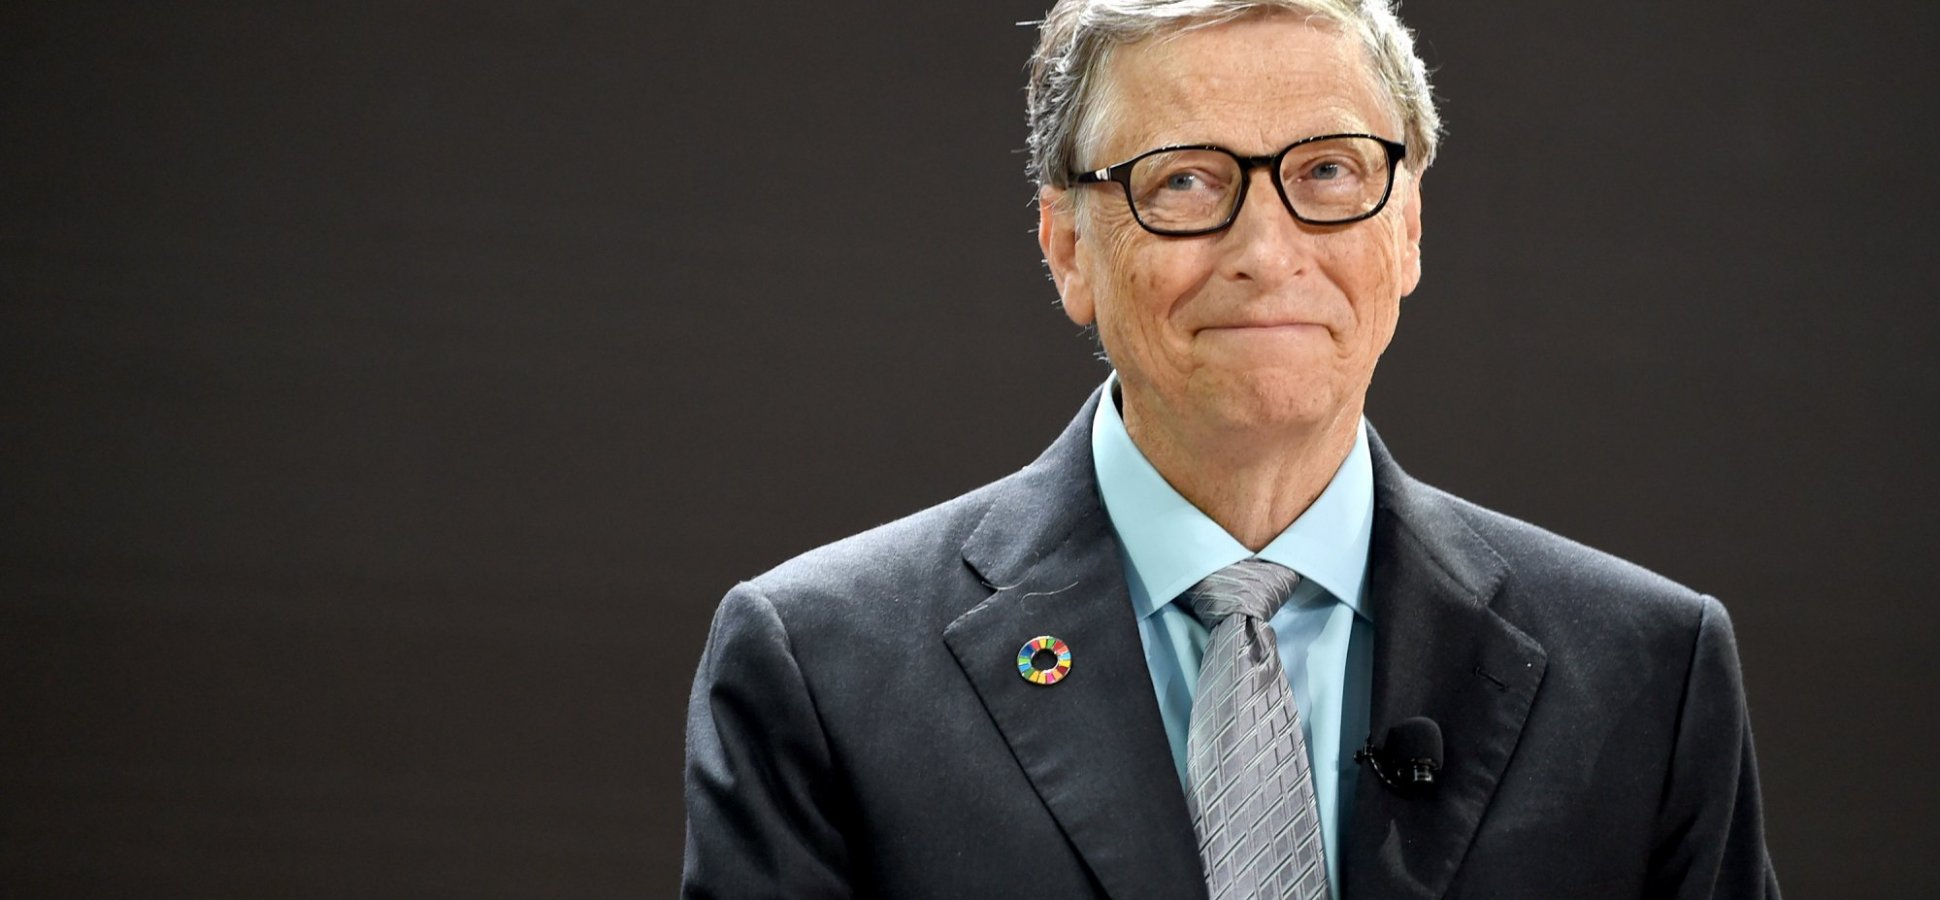 20 Years Ago, Bill Gates Made the Most Important Decision of His Life. Somehow, Almost Nobody Even Noticed